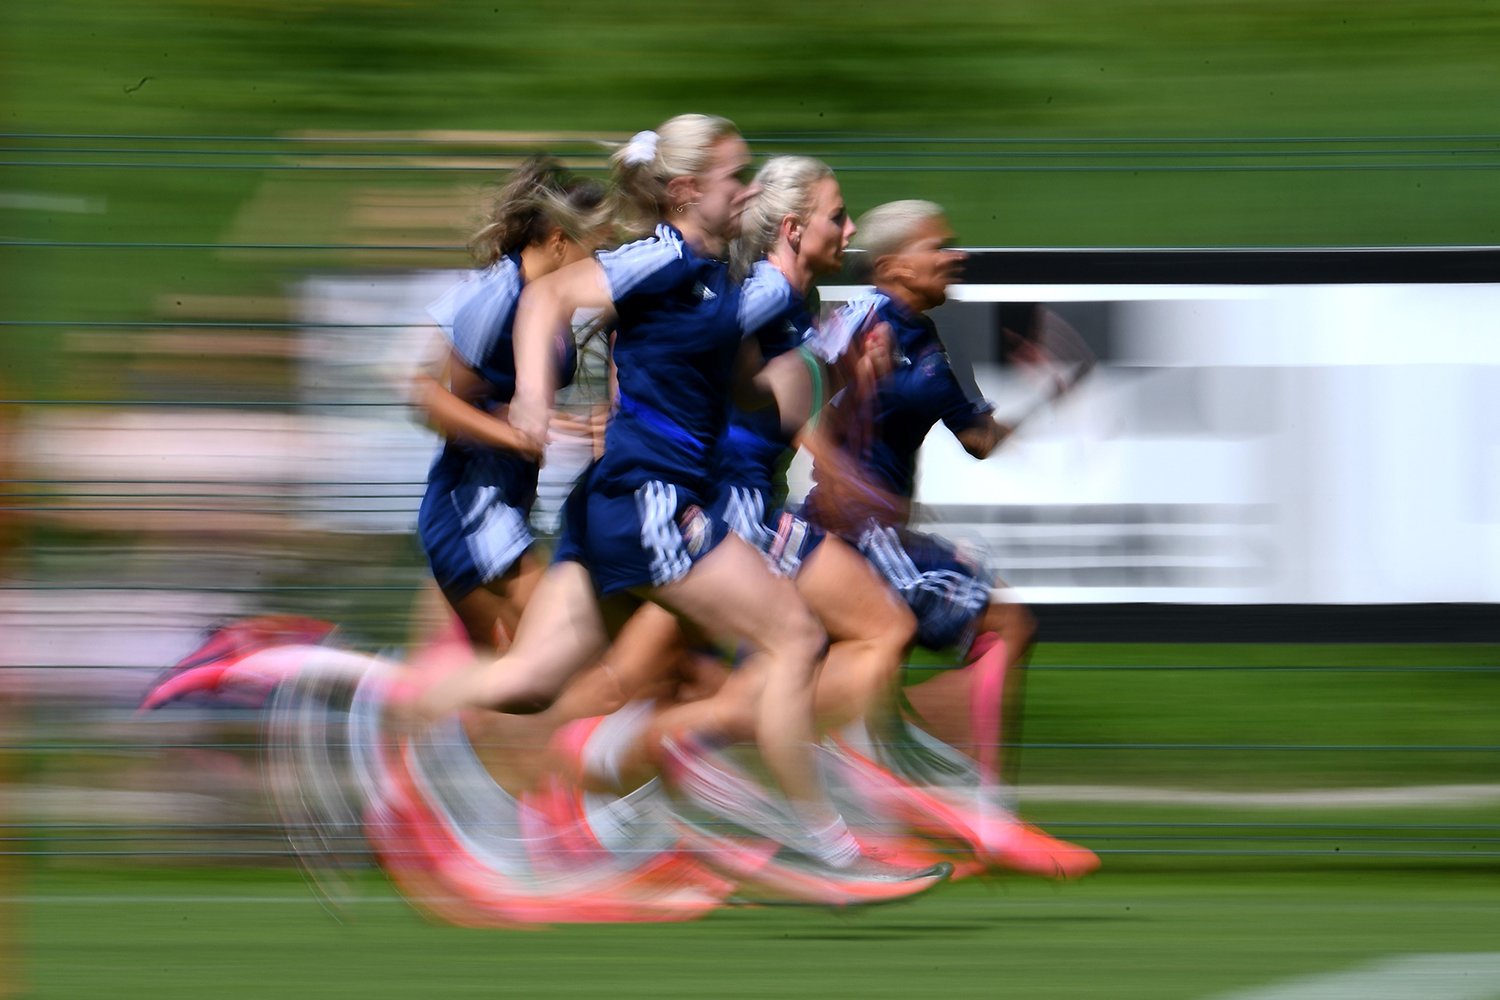 Members of the Olympique Lyonnais women's football club sprint during a training session at the Cantona stadium in Tignes, French Alps, on July 6. FRANCK FIFE/AFP via Getty Images